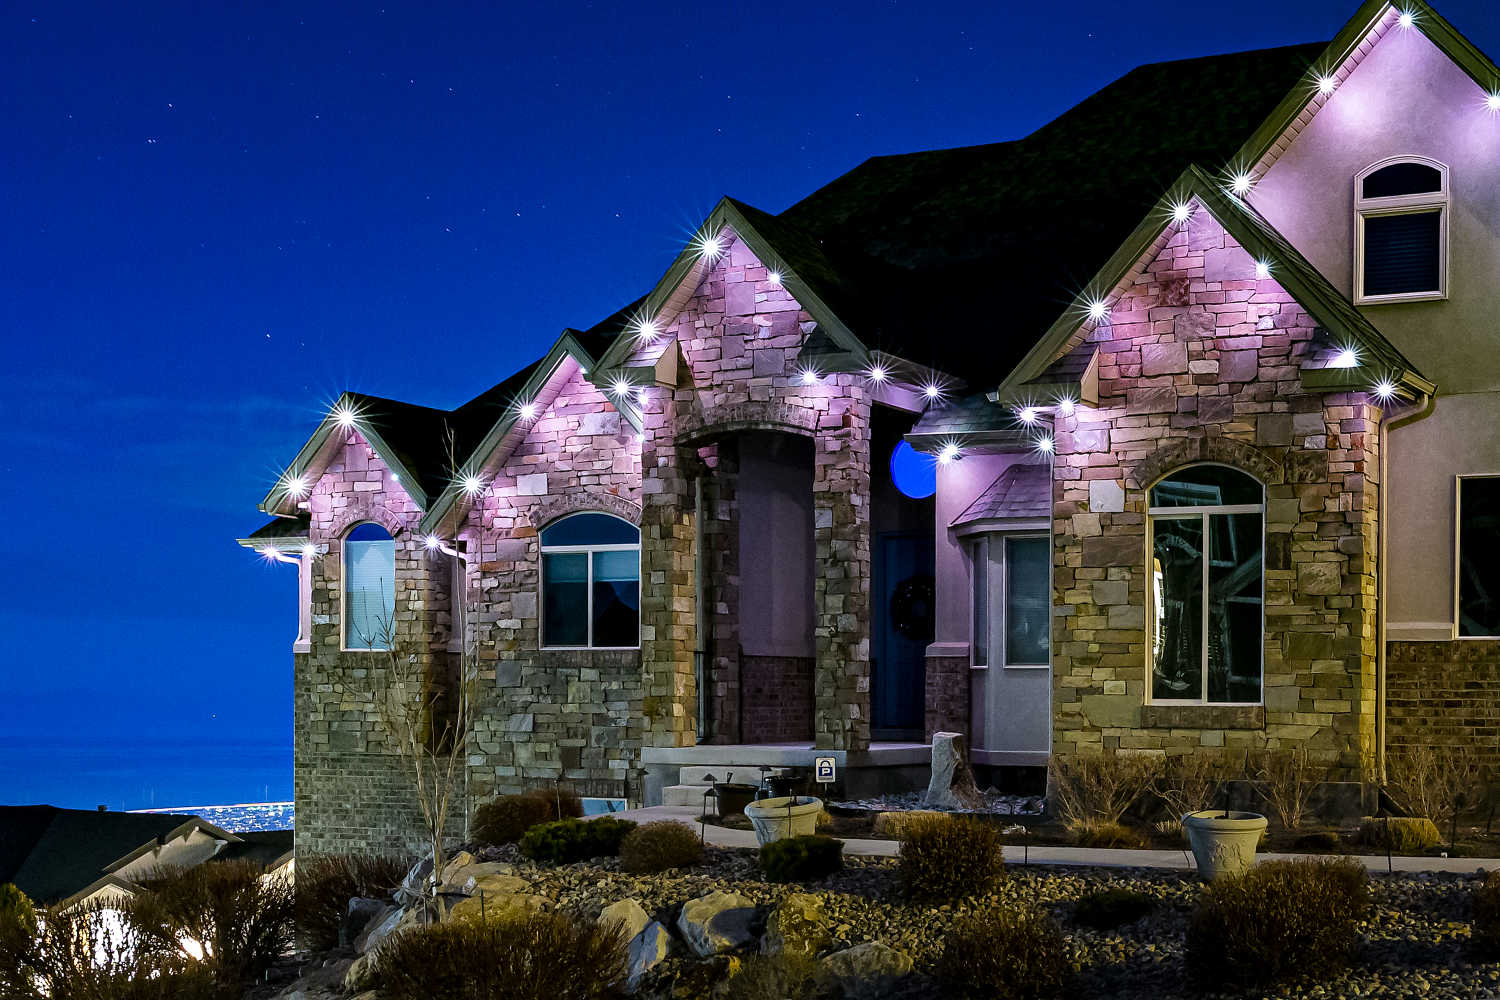 trimlight iluminating a home